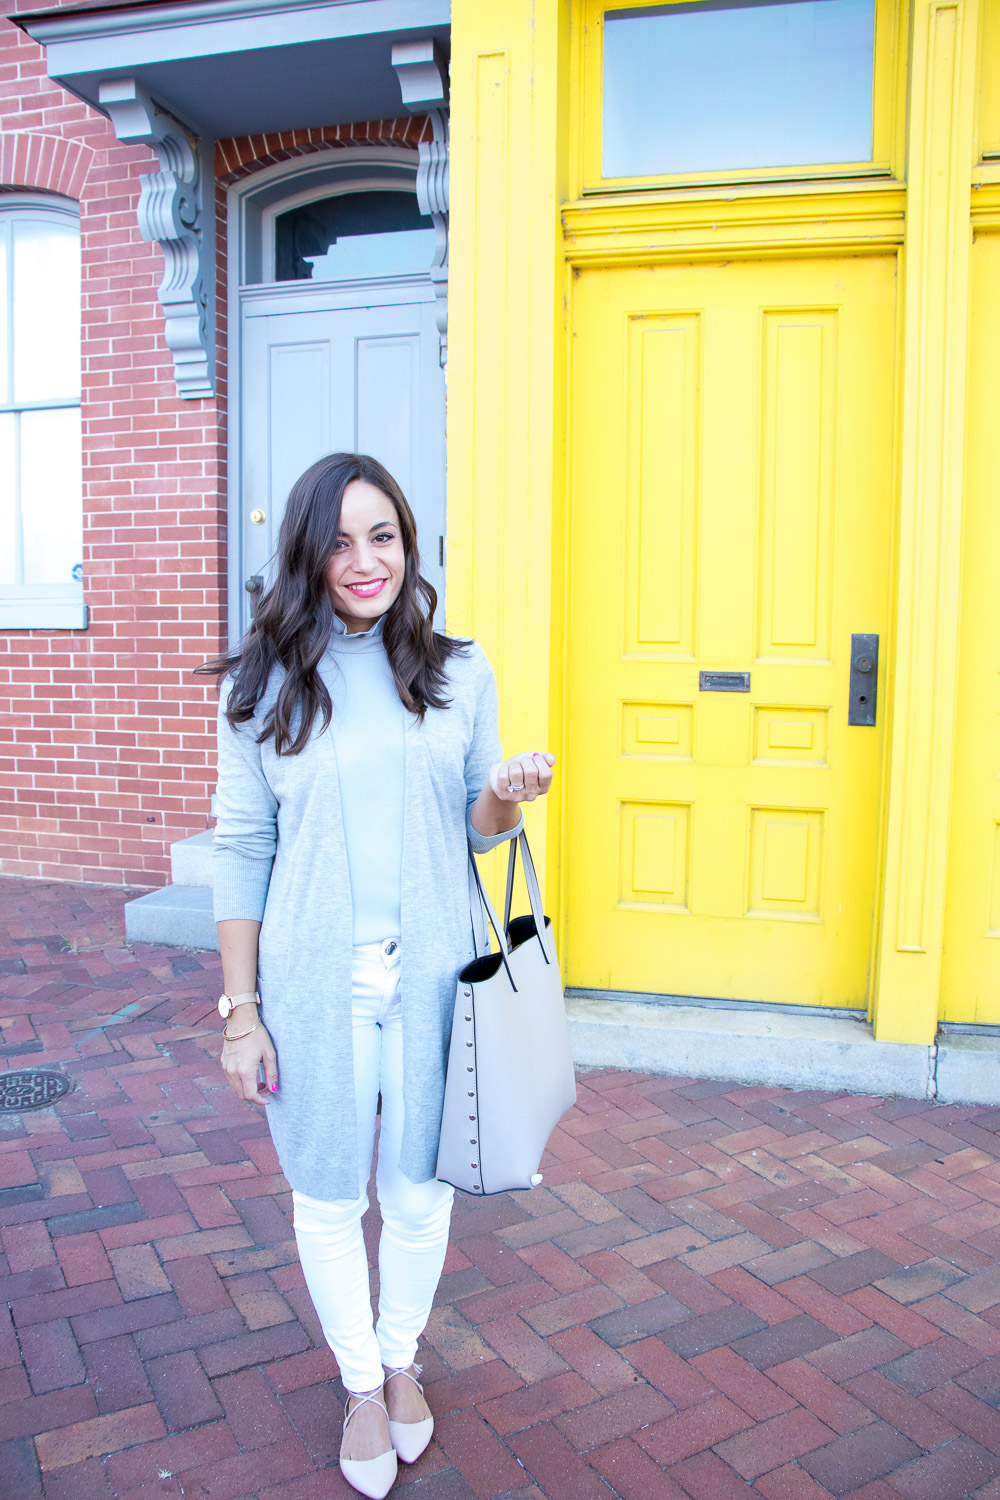 The Best Cardigan for Summer to Fall - Halogen Cardigan from Nordstrom